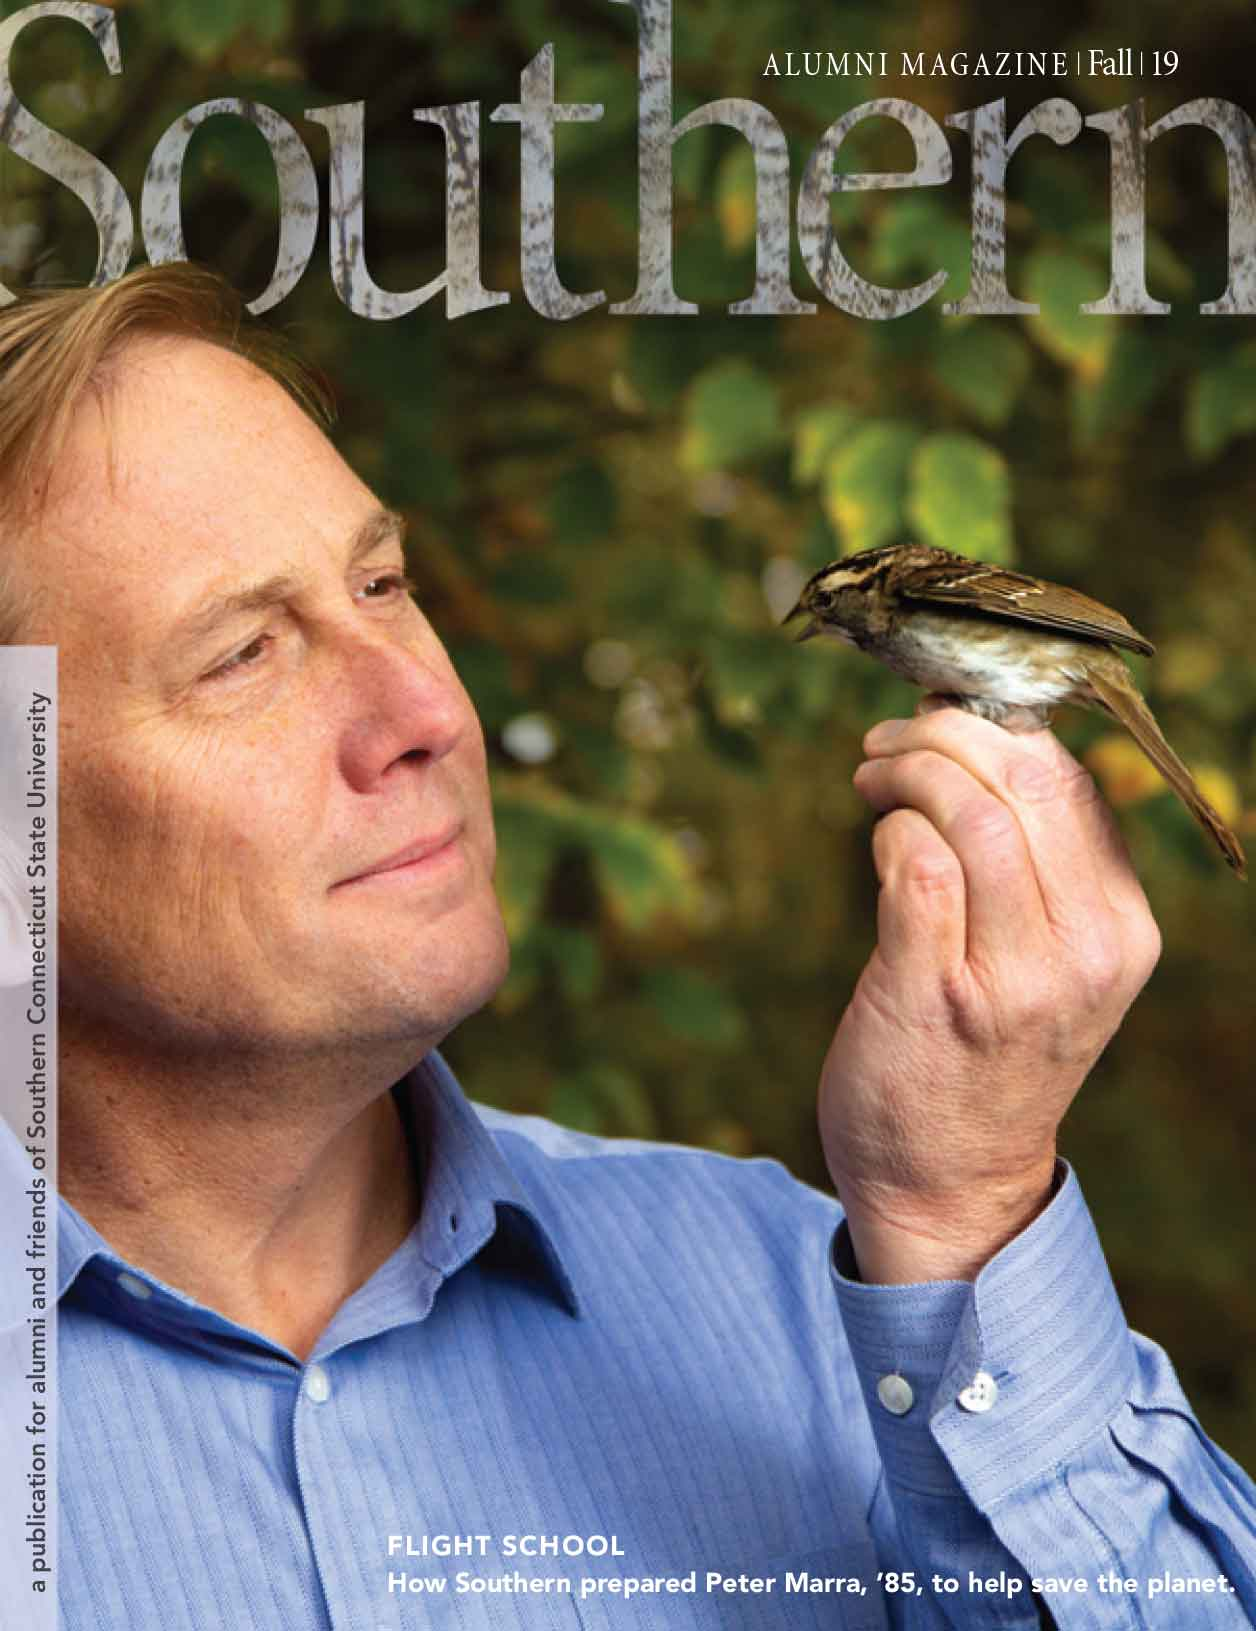 Southern Alumni Magazine cover, Fall 2019, featuring Peter Marra, '85